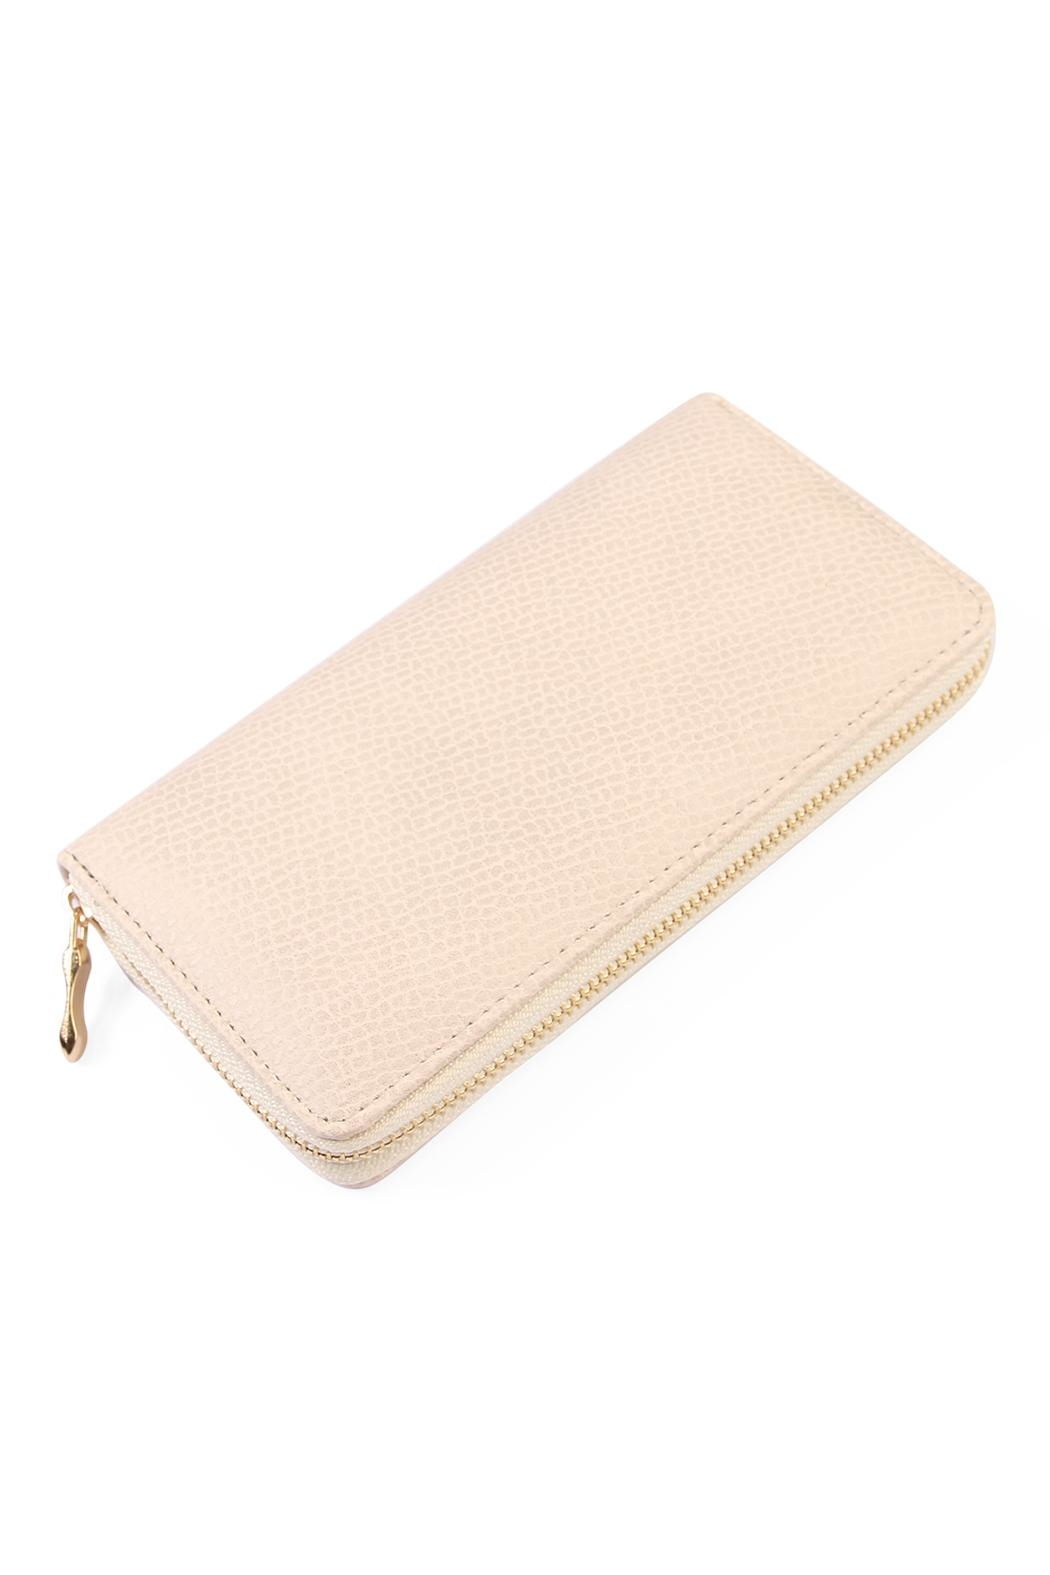 Riah Fashion White Textured Wallet - Main Image